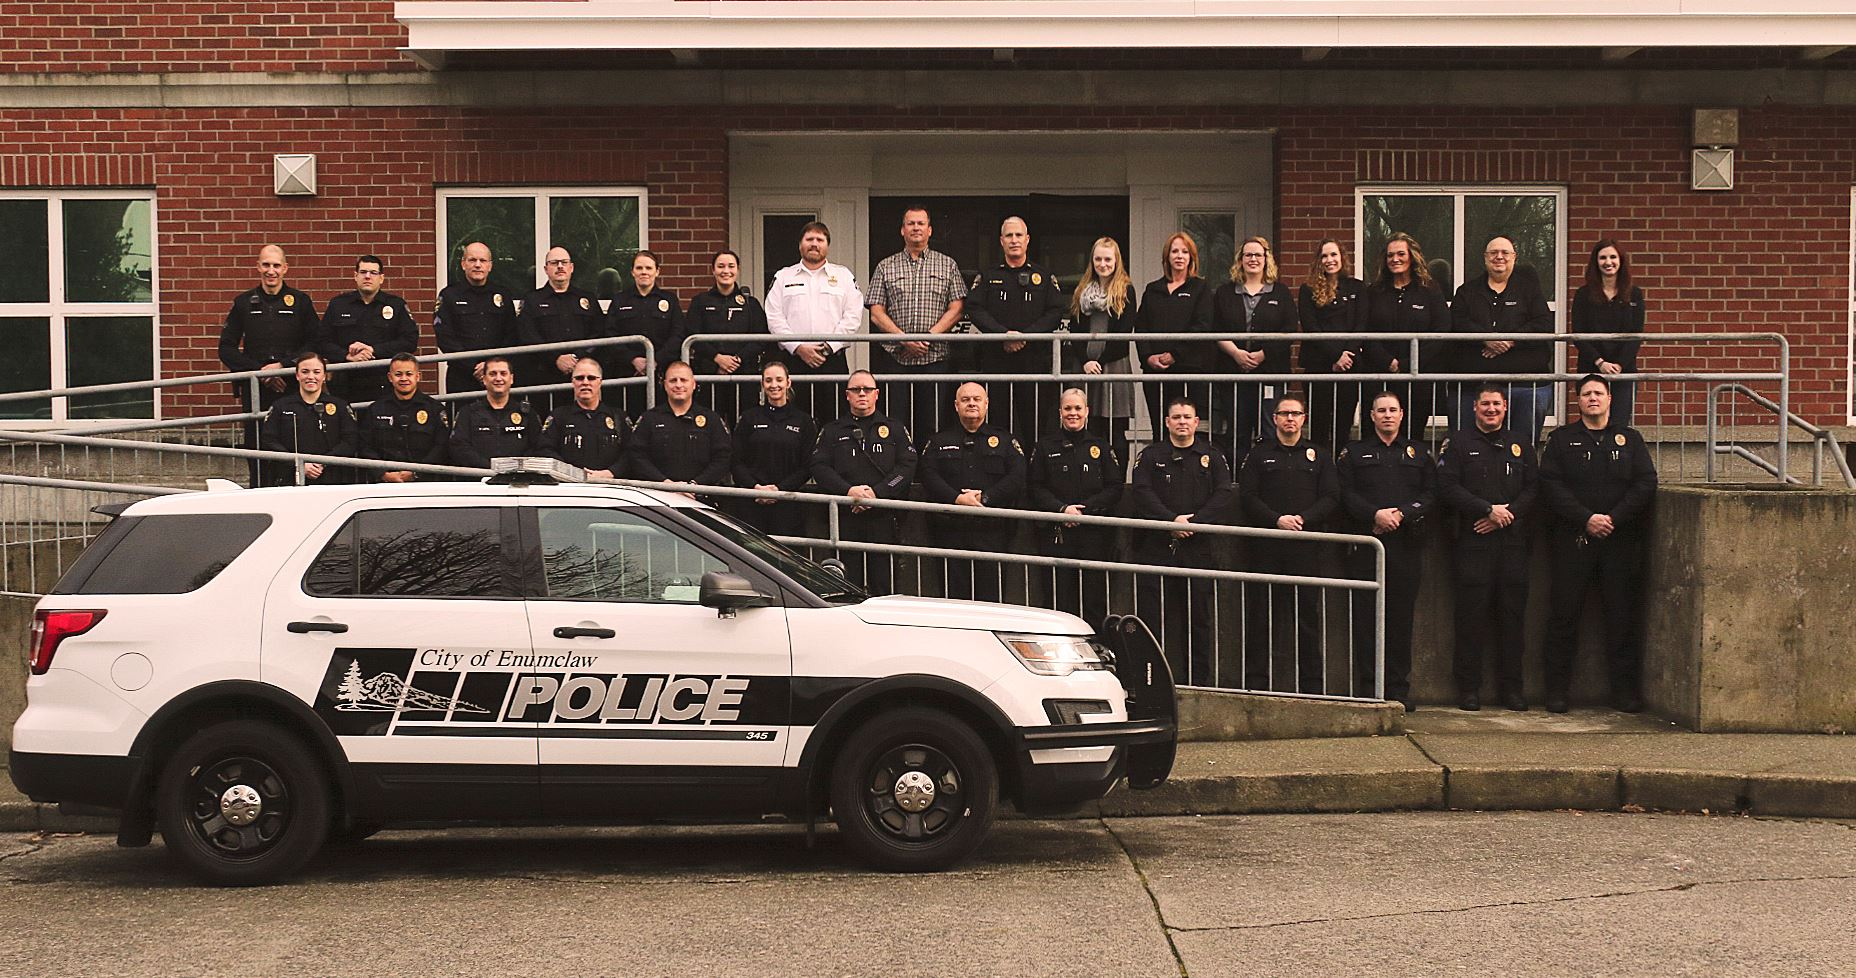 Police | Enumclaw, WA - Official Website